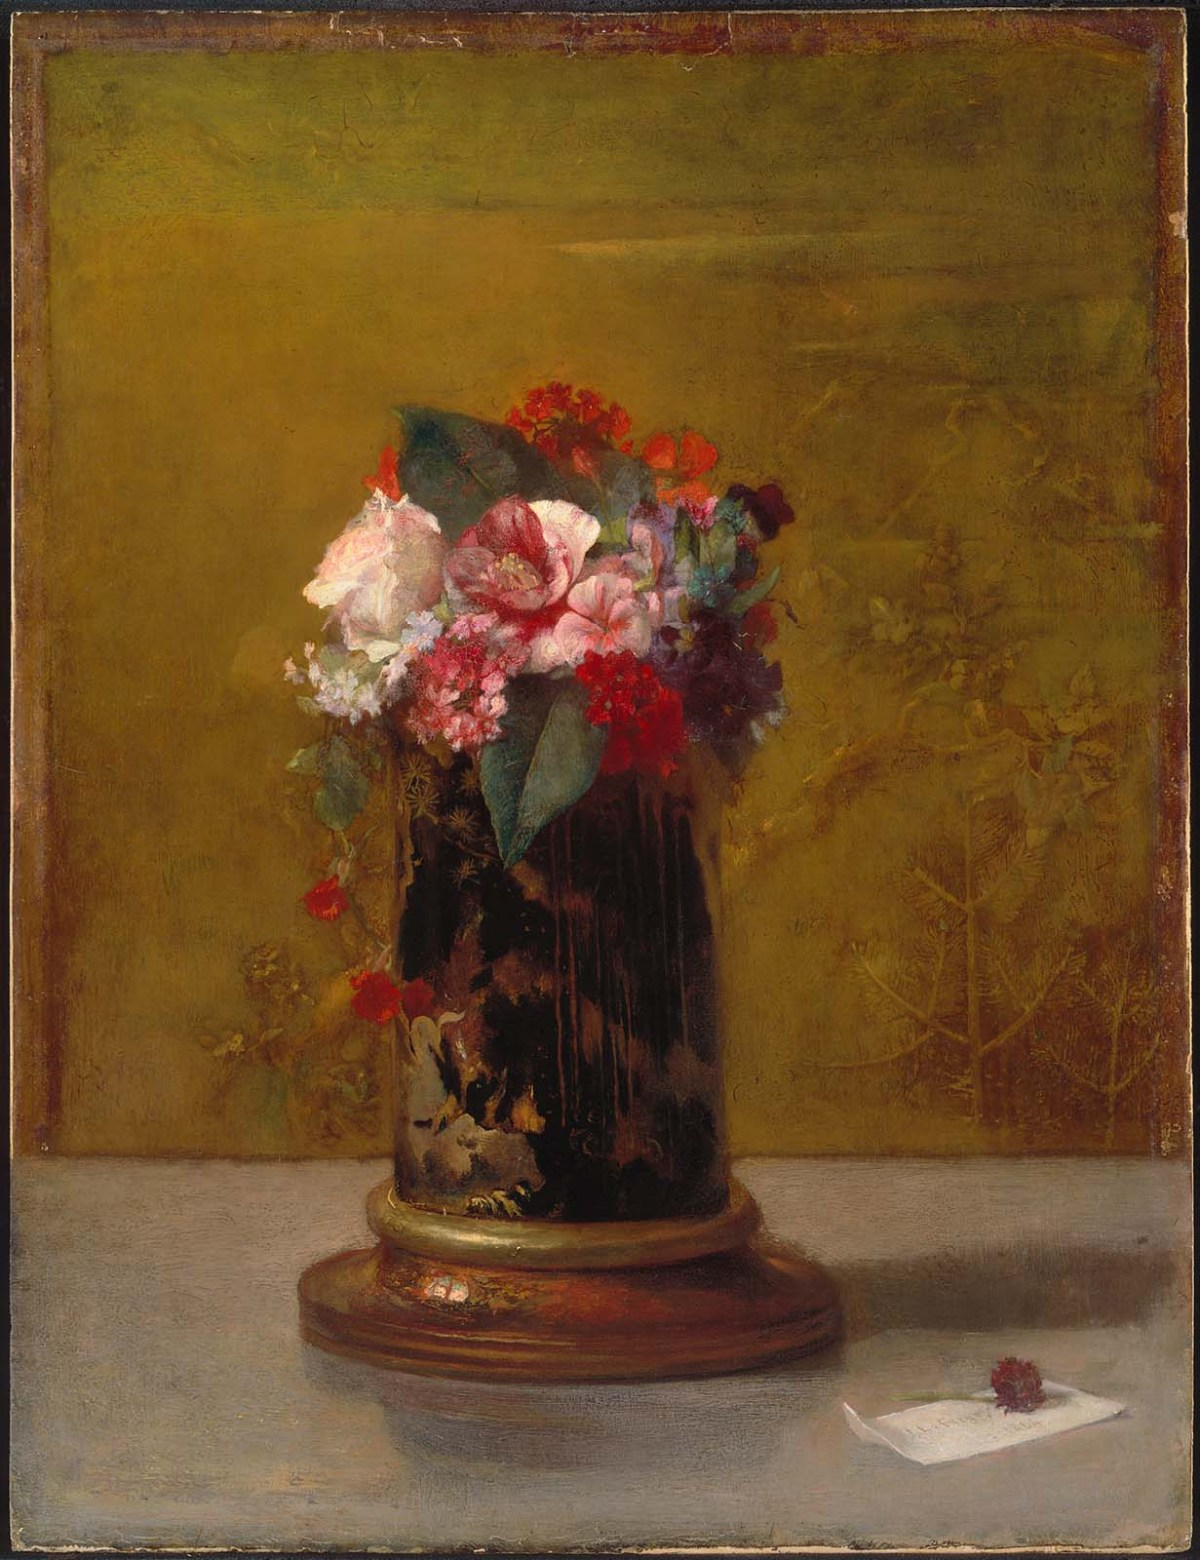 Flowers in a Japanese Vase by John LaFarge